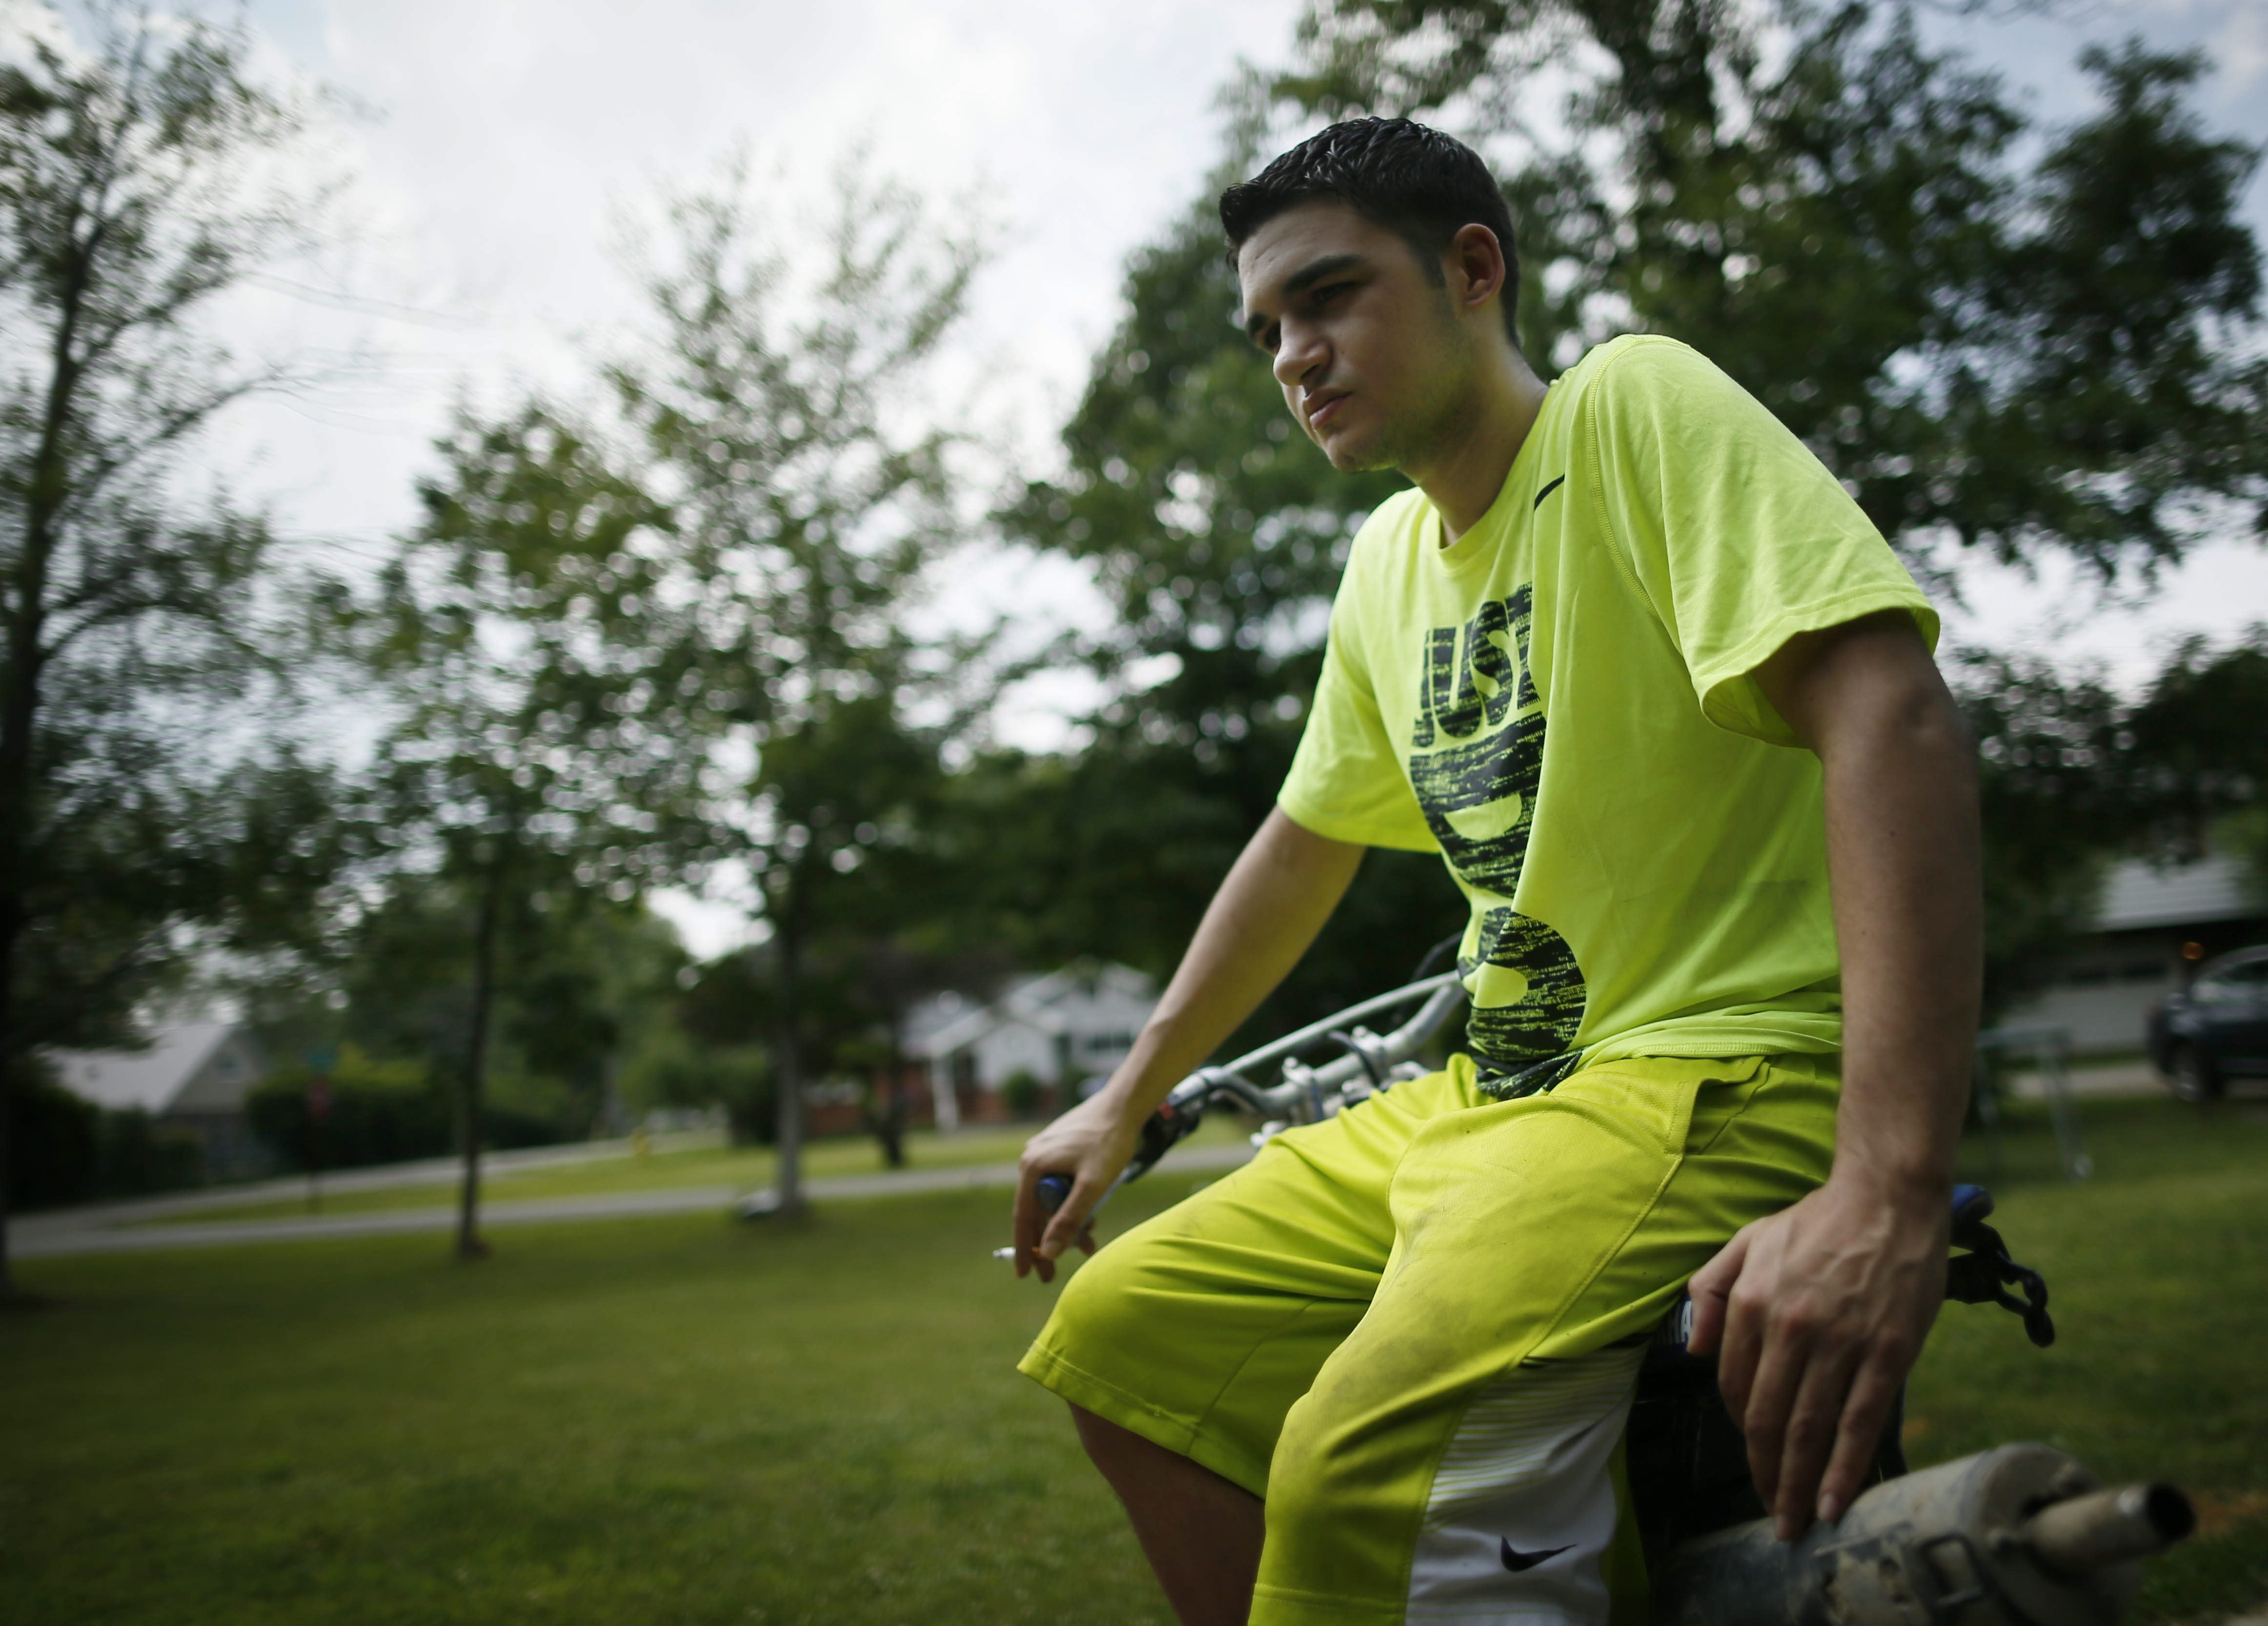 Nicholas Harris, whose biological father, Richard Matt, was shot and killed by federal agents while he was on the run after escaping from prison, pauses to reflect while working on his dirt bike outside his Angola home Tuesday.